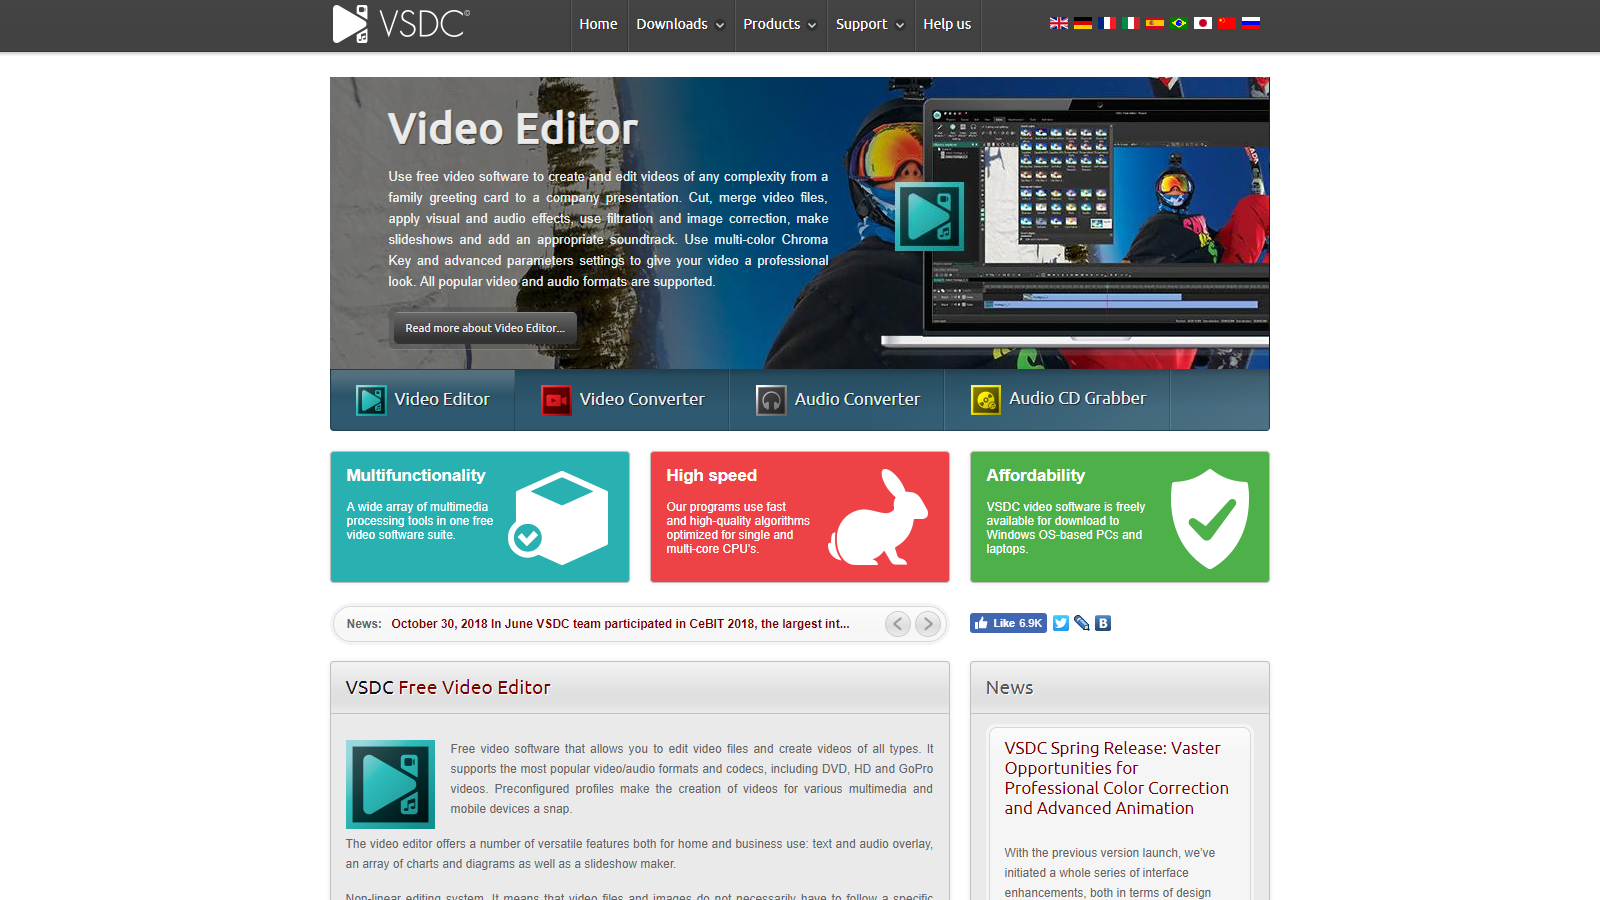 Website of the VSDC Free Video Editor Compromised to Push